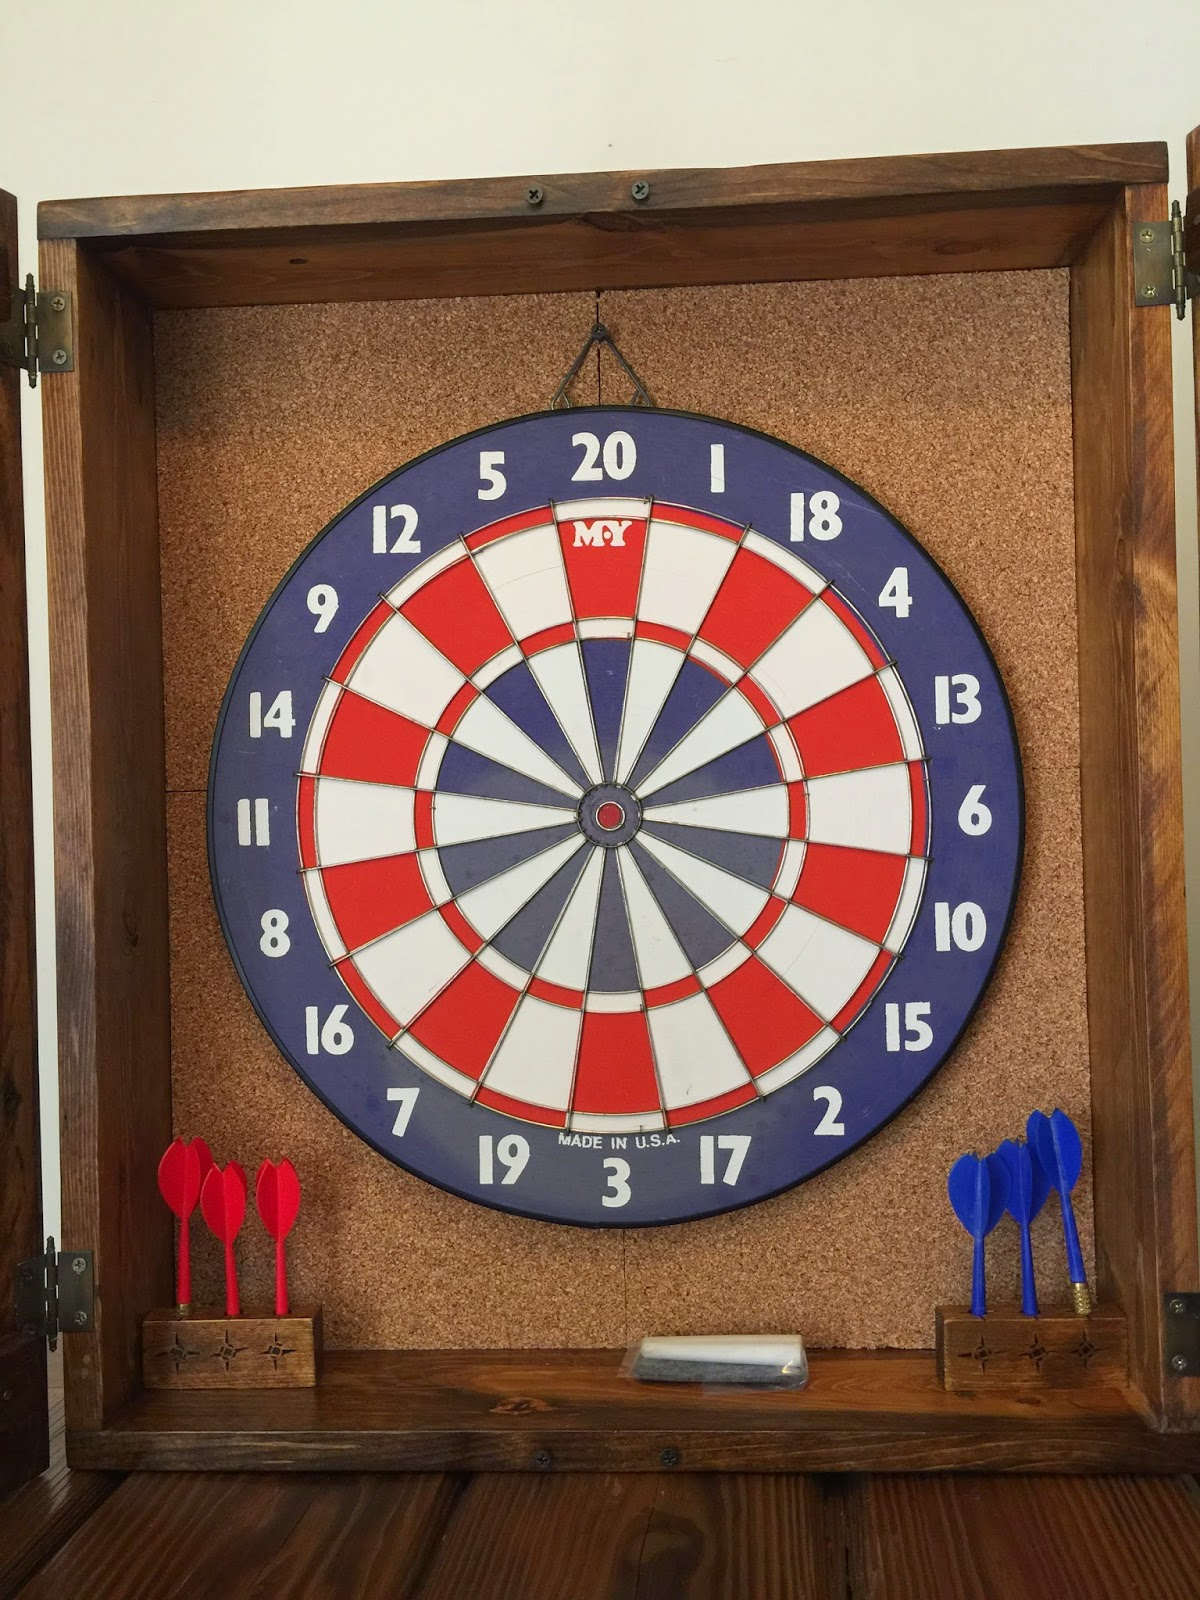 Rustic Dart Board Cabinet With Old-School Dart Board